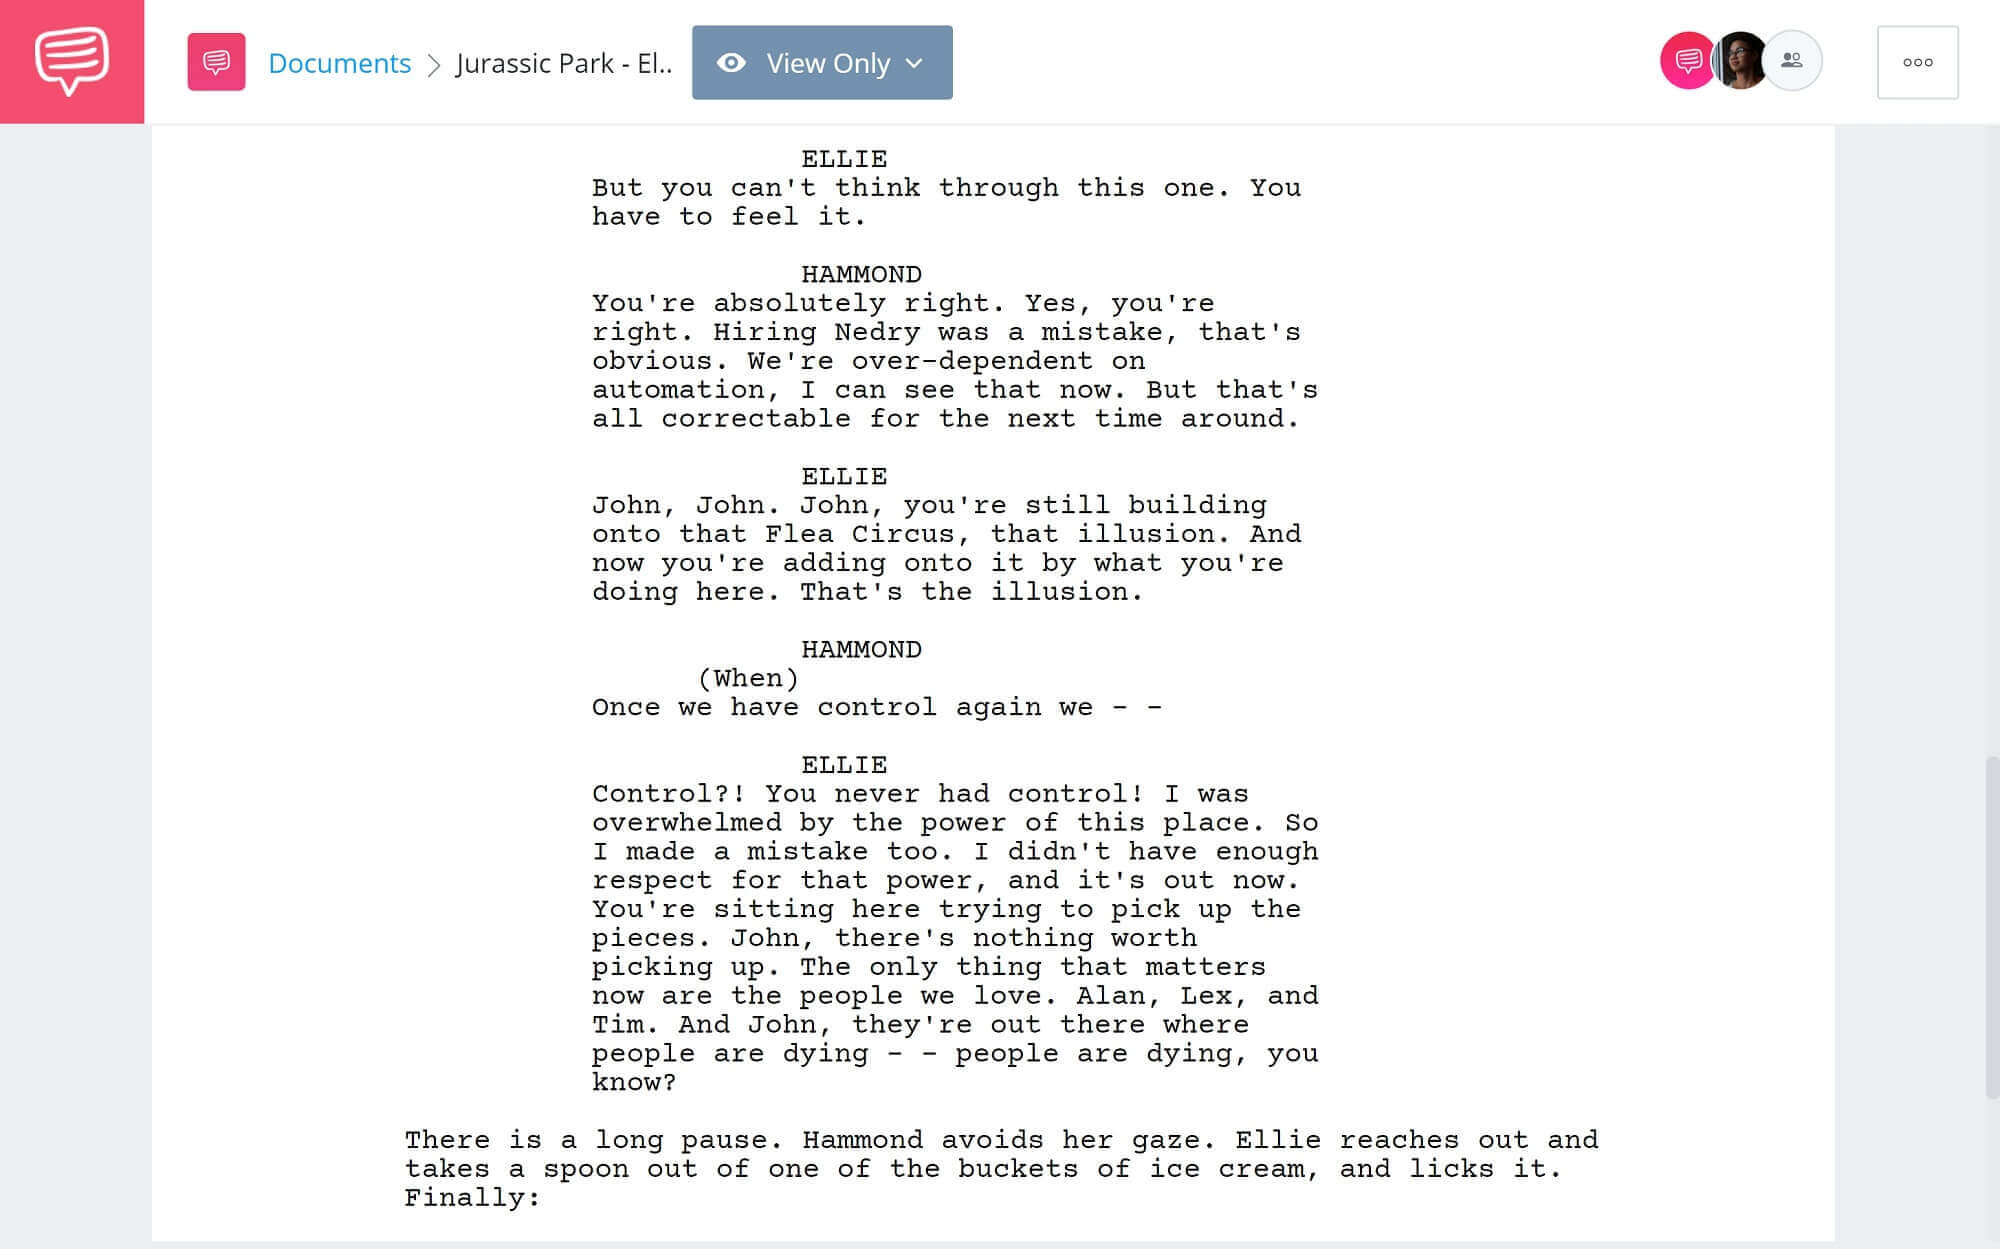 Jurassic Park Script Teardown - Ellie Rephimands Hammond - StudioBinder Screenwriting Software